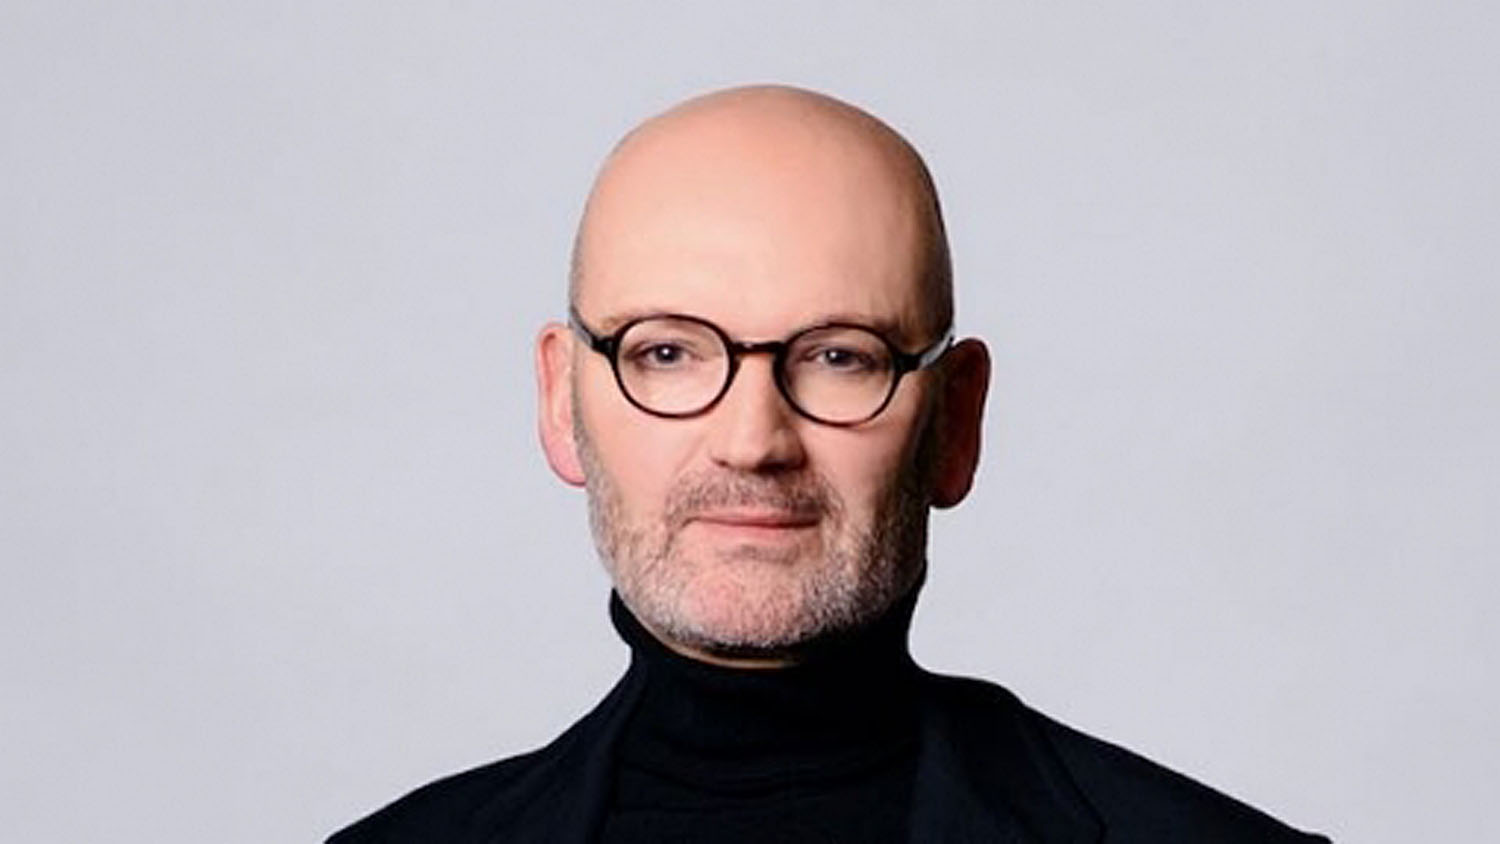 Ben Frow promoted to Director of Programmes for Viacom UK